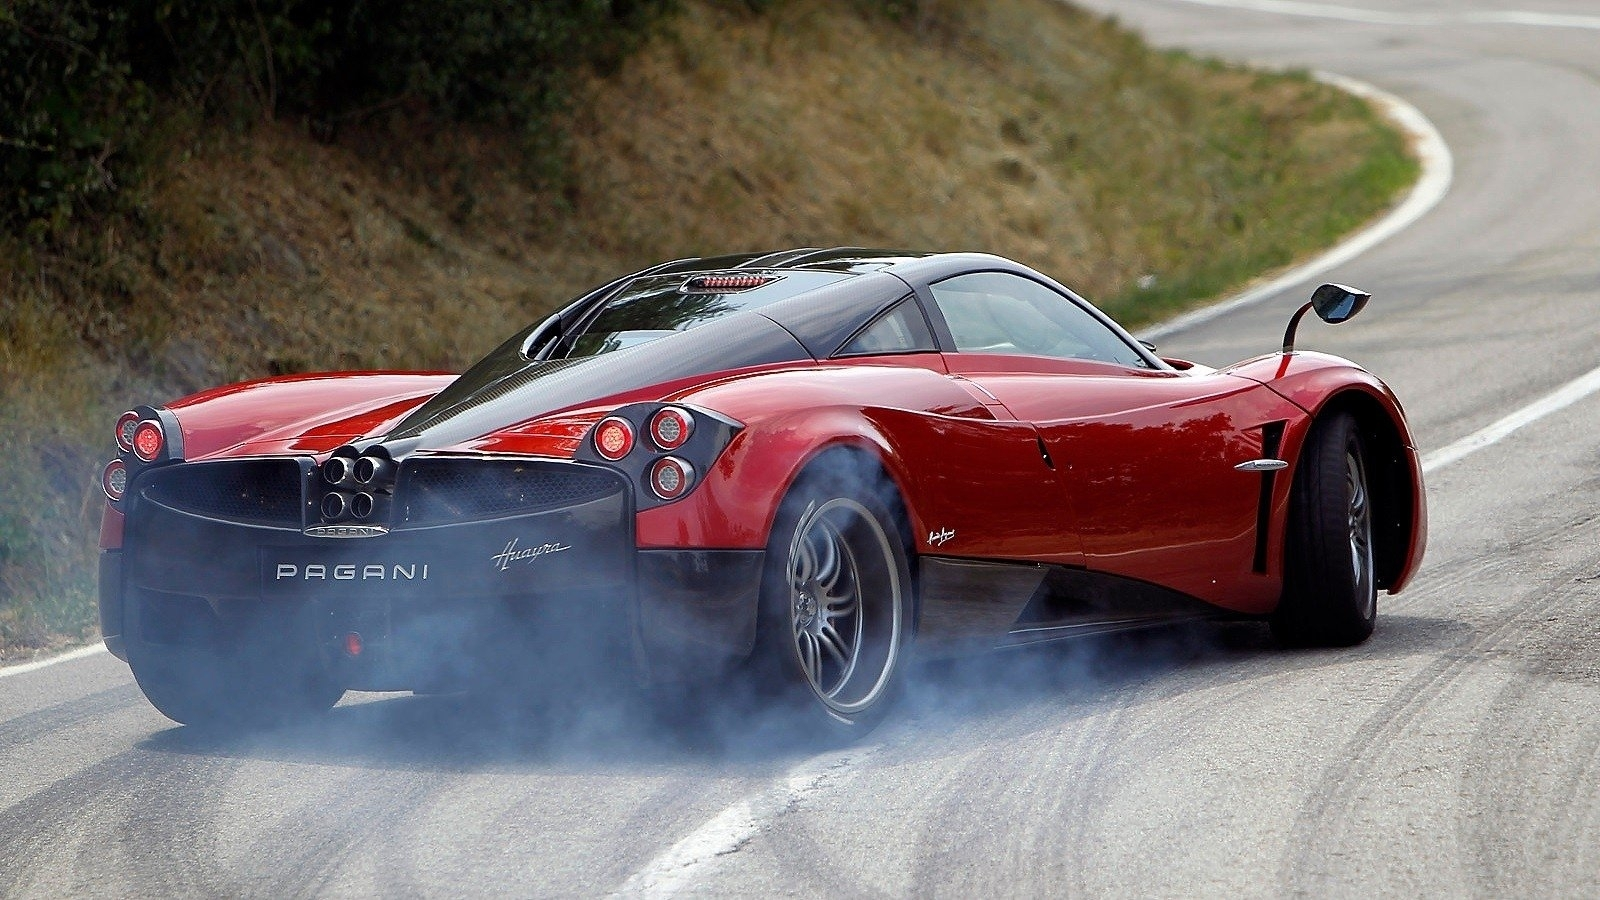 10 Best Pagani Huayra Wallpaper 1920X1080 FULL HD 1920×1080 For PC Background